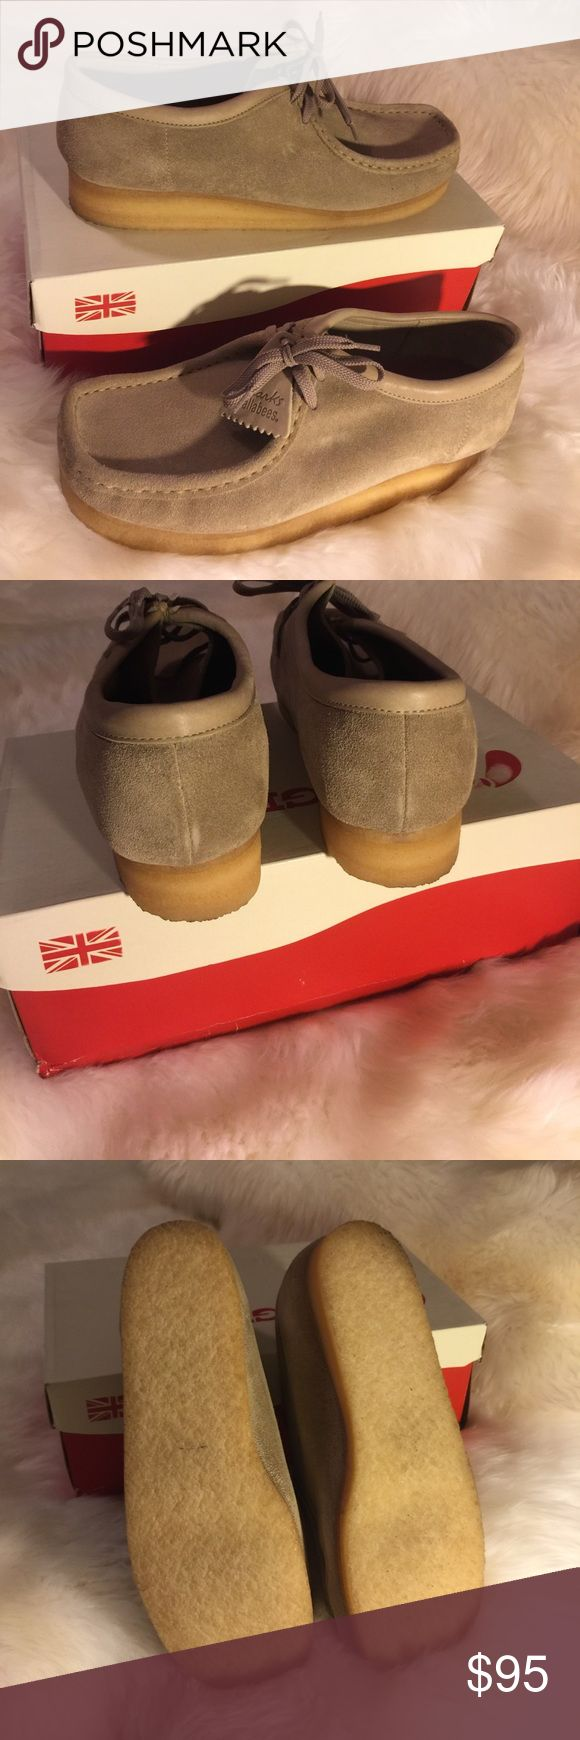 Men's Clarks Wallabee Like new!! True gum soles. Includes box. Only worn to try on. Clarks Shoes